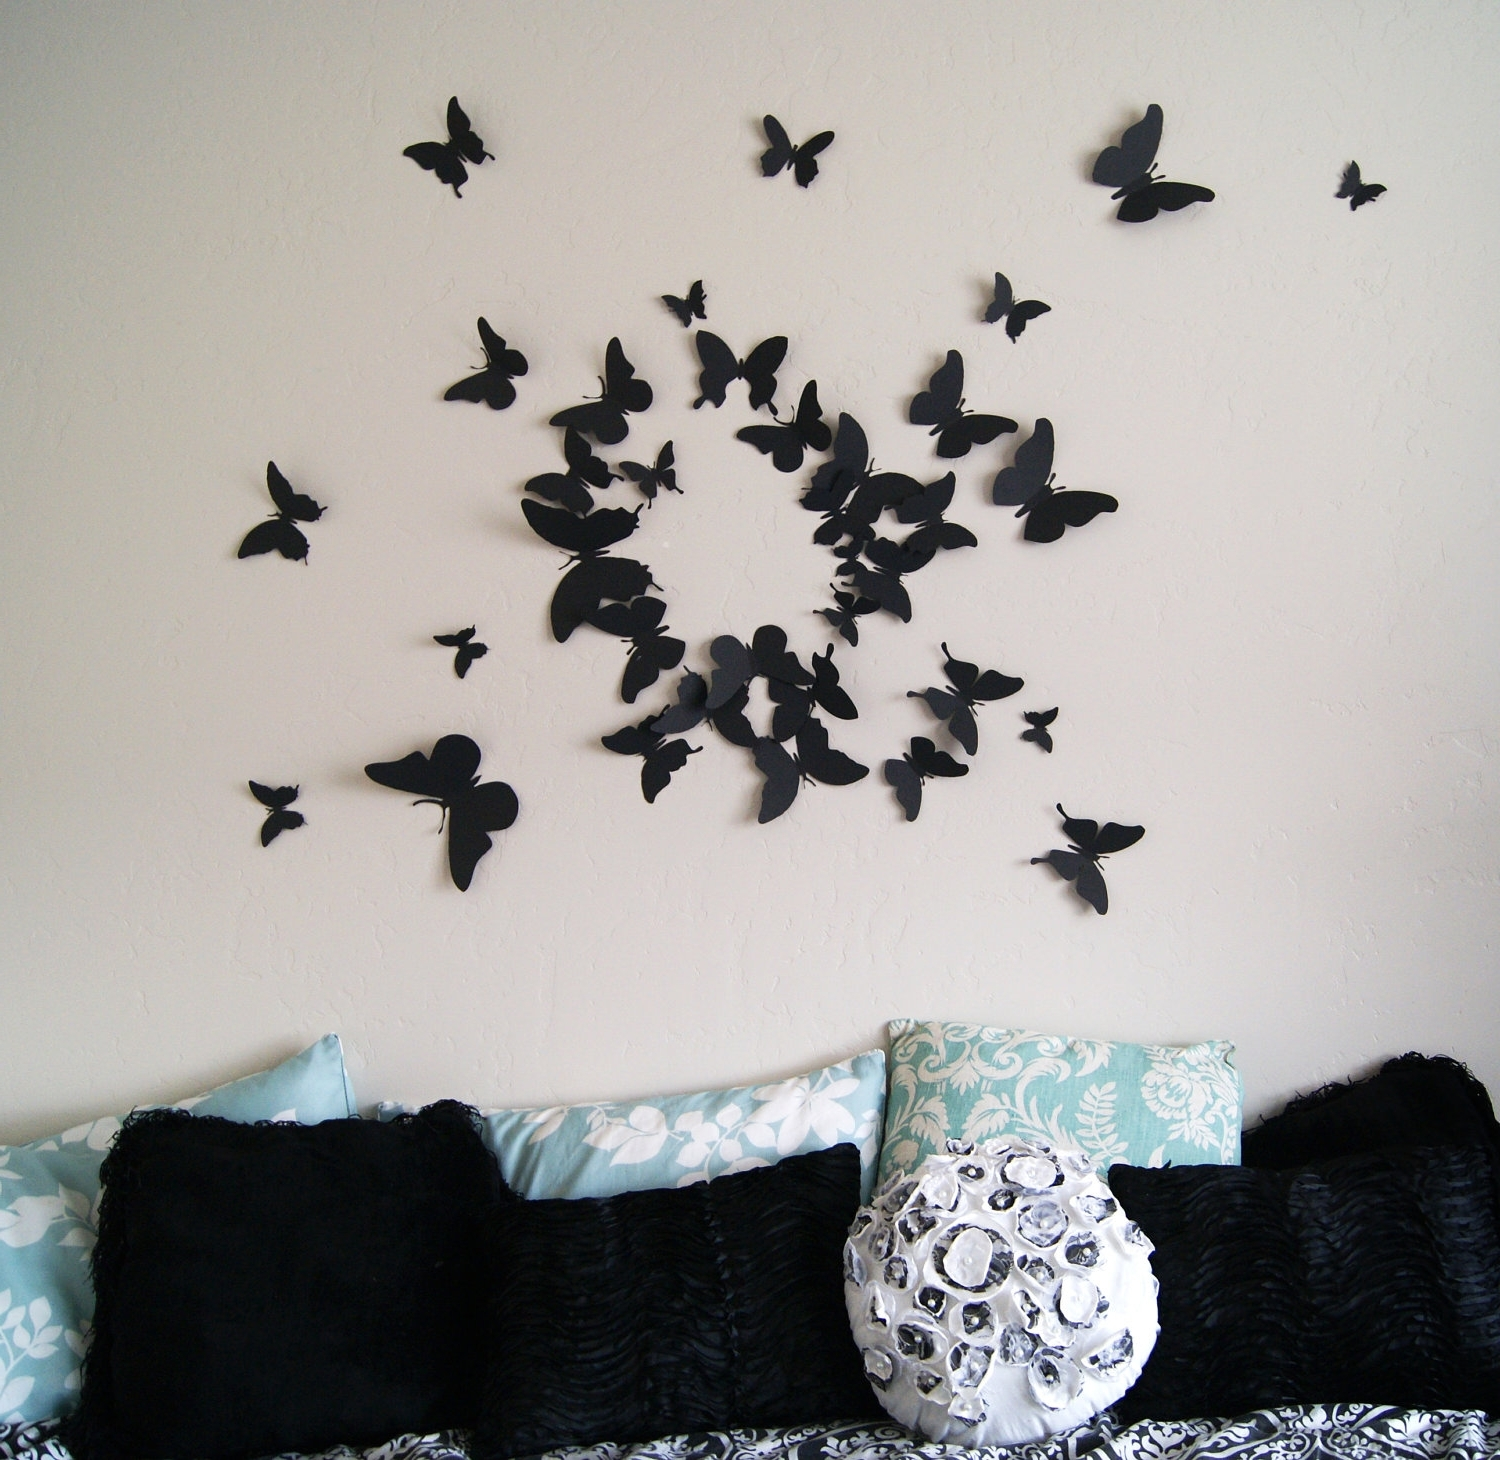 Free Us Shipping 40 3D Butterfly Wall Art Circle Burstleeshay Regarding Latest Decorative 3D Wall Art Stickers (View 7 of 15)